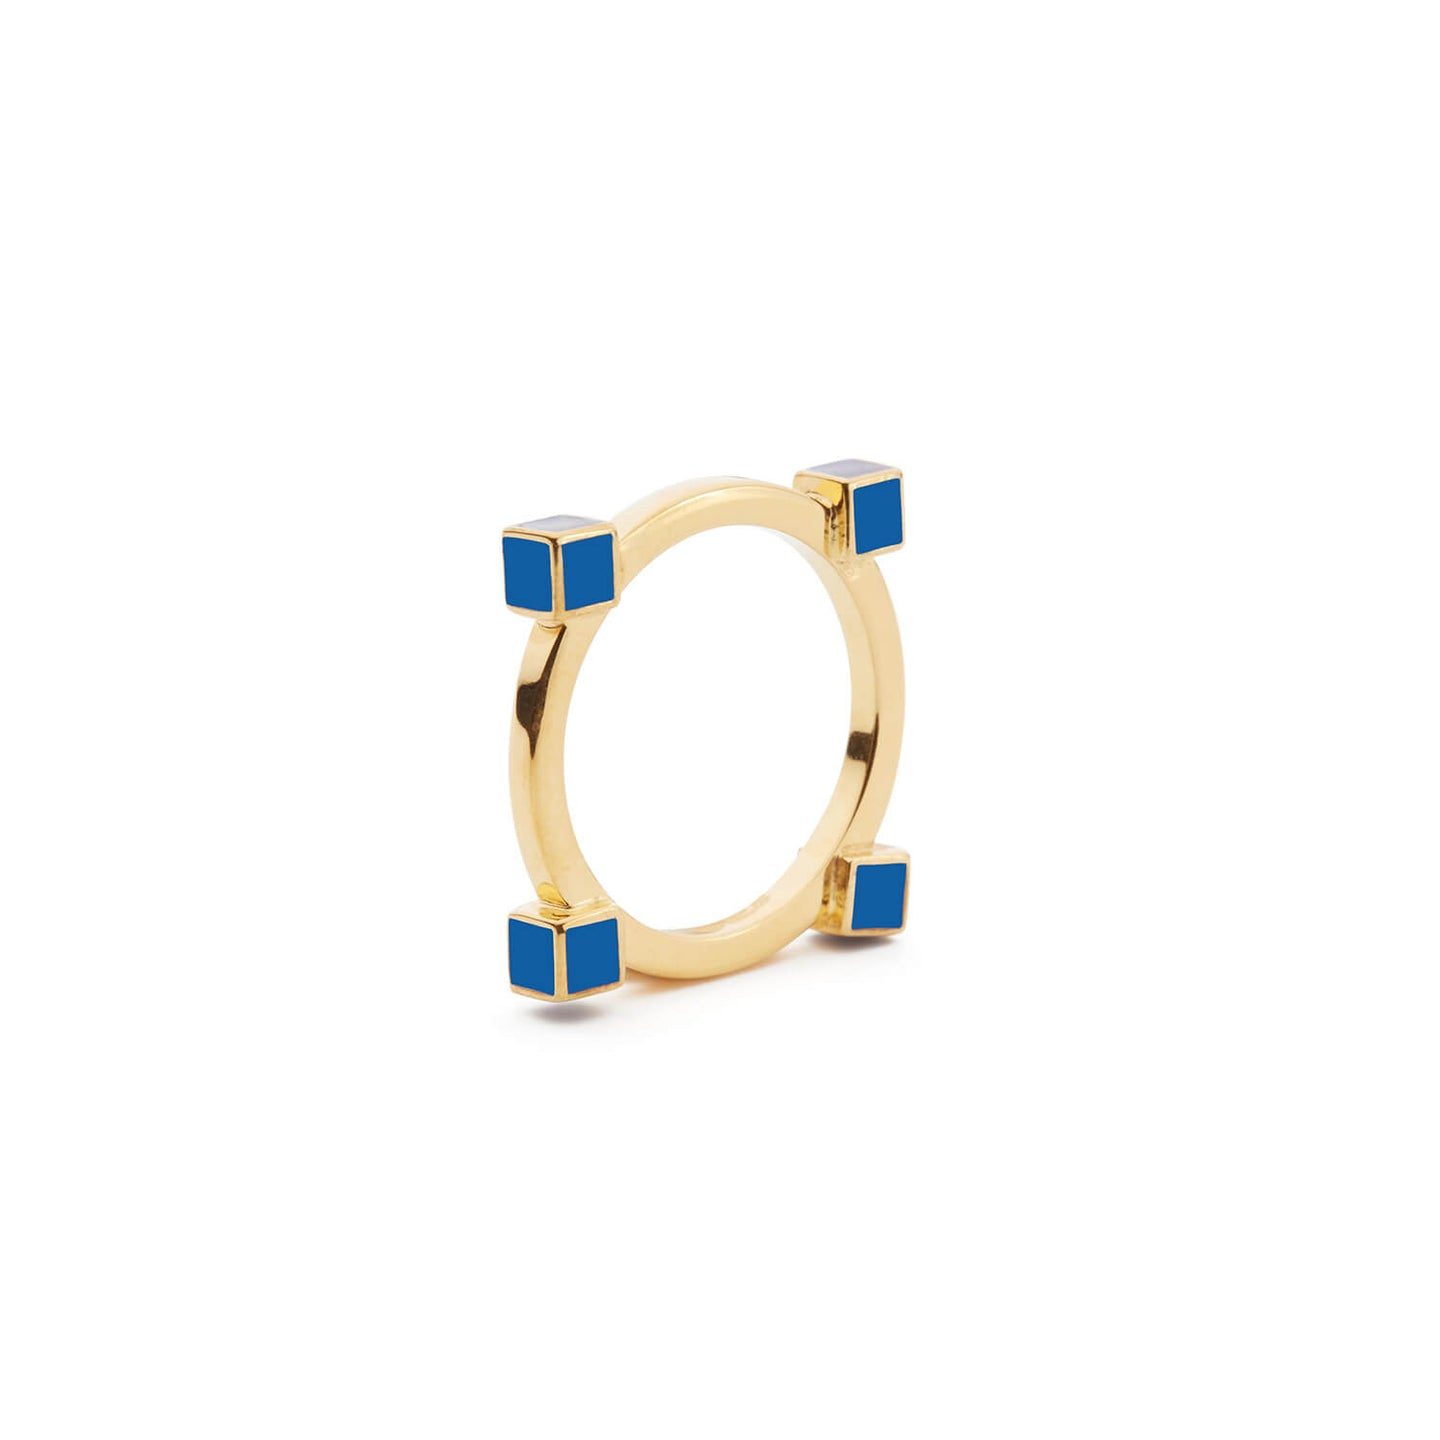 Gold Angel, Islington Ring with Blue Enamel